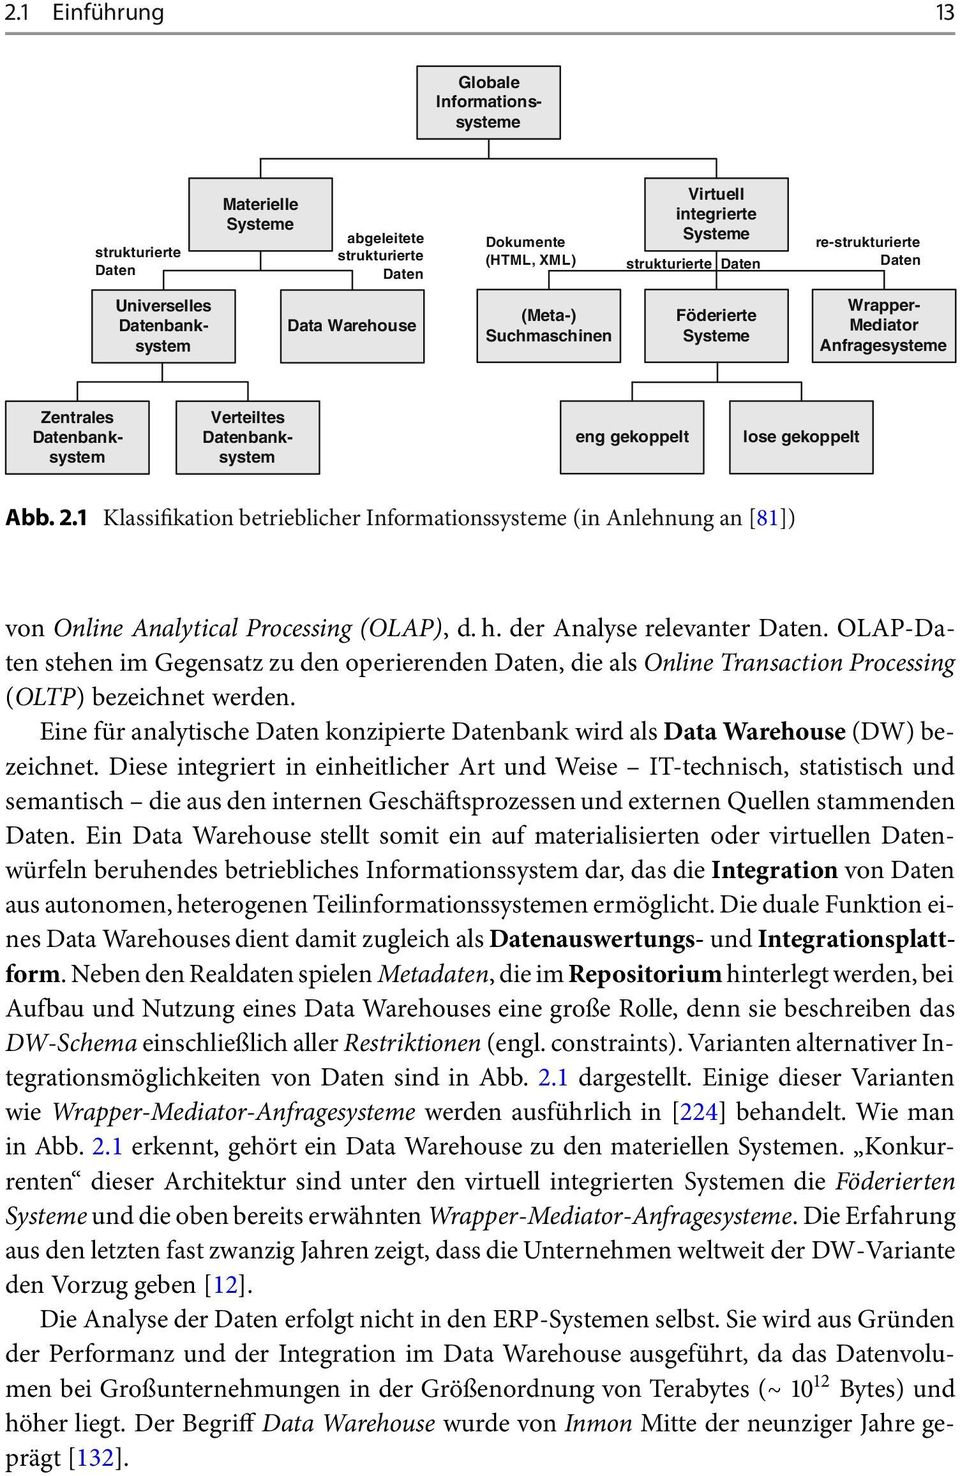 lose gekoppelt Abb. 2.1 Klassifikation betrieblicher Informationssysteme (in Anlehnung an [81]) von Online Analytical Processing (OLAP), d. h. der Analyse relevanter Daten.